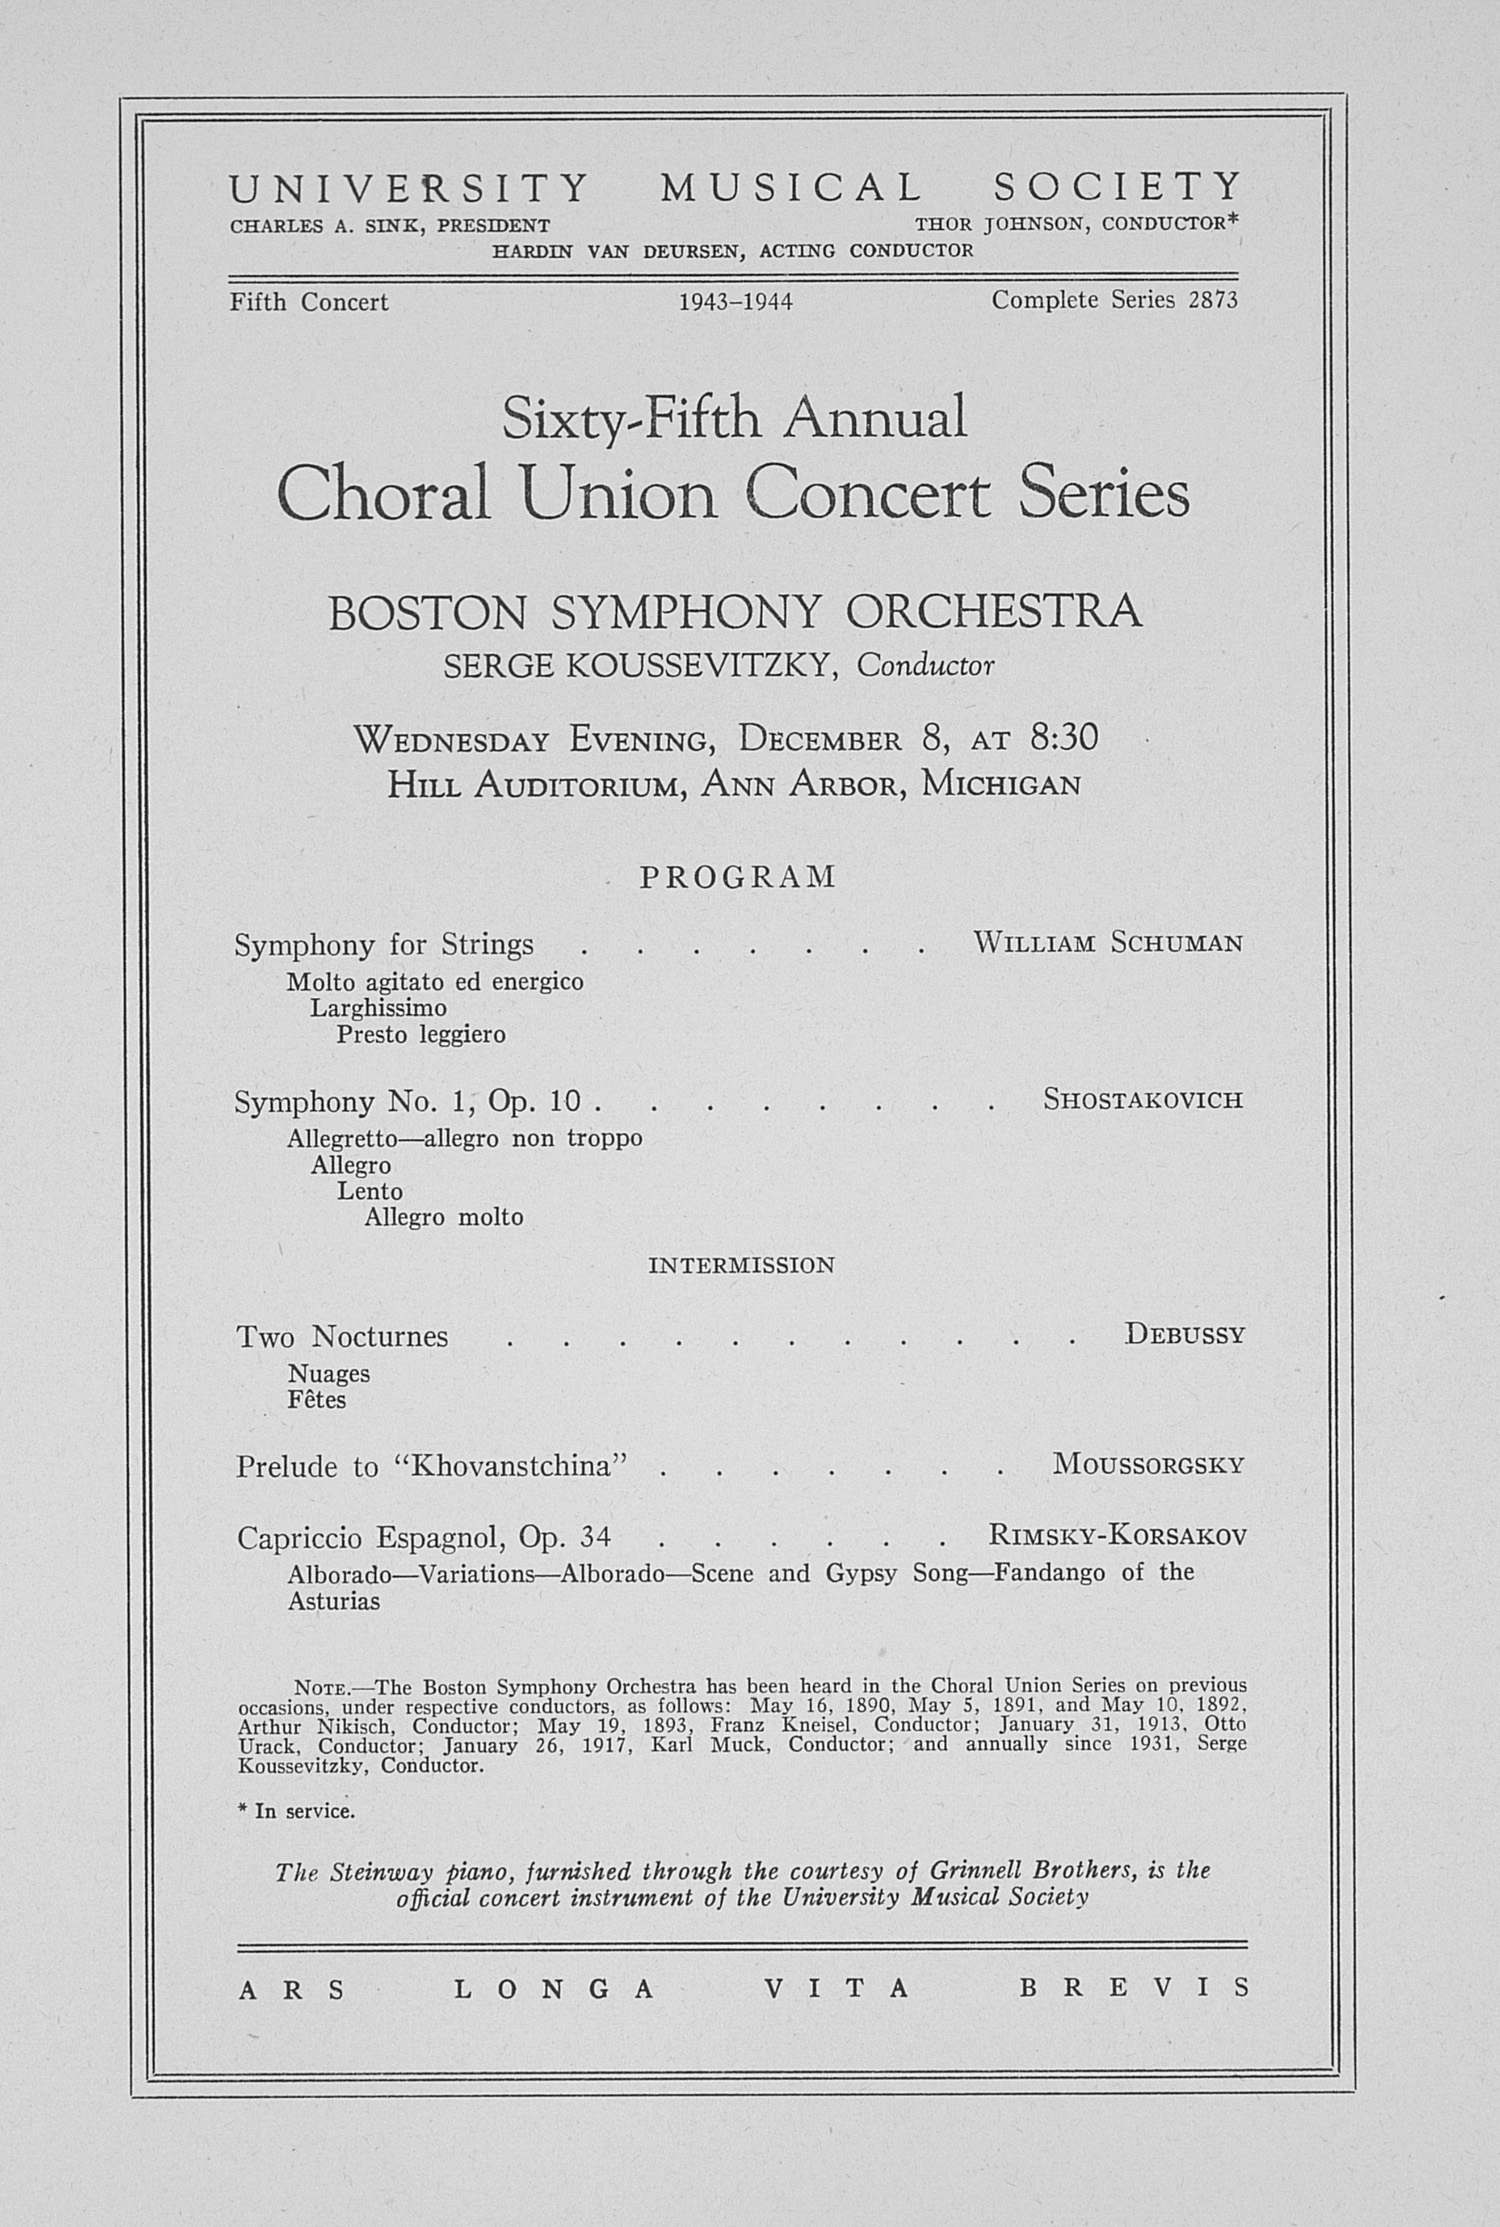 UMS Concert Program, December 8: Sixty-fifth Annual Choral Union Concert Series -- Boston Symphony Orchestra image